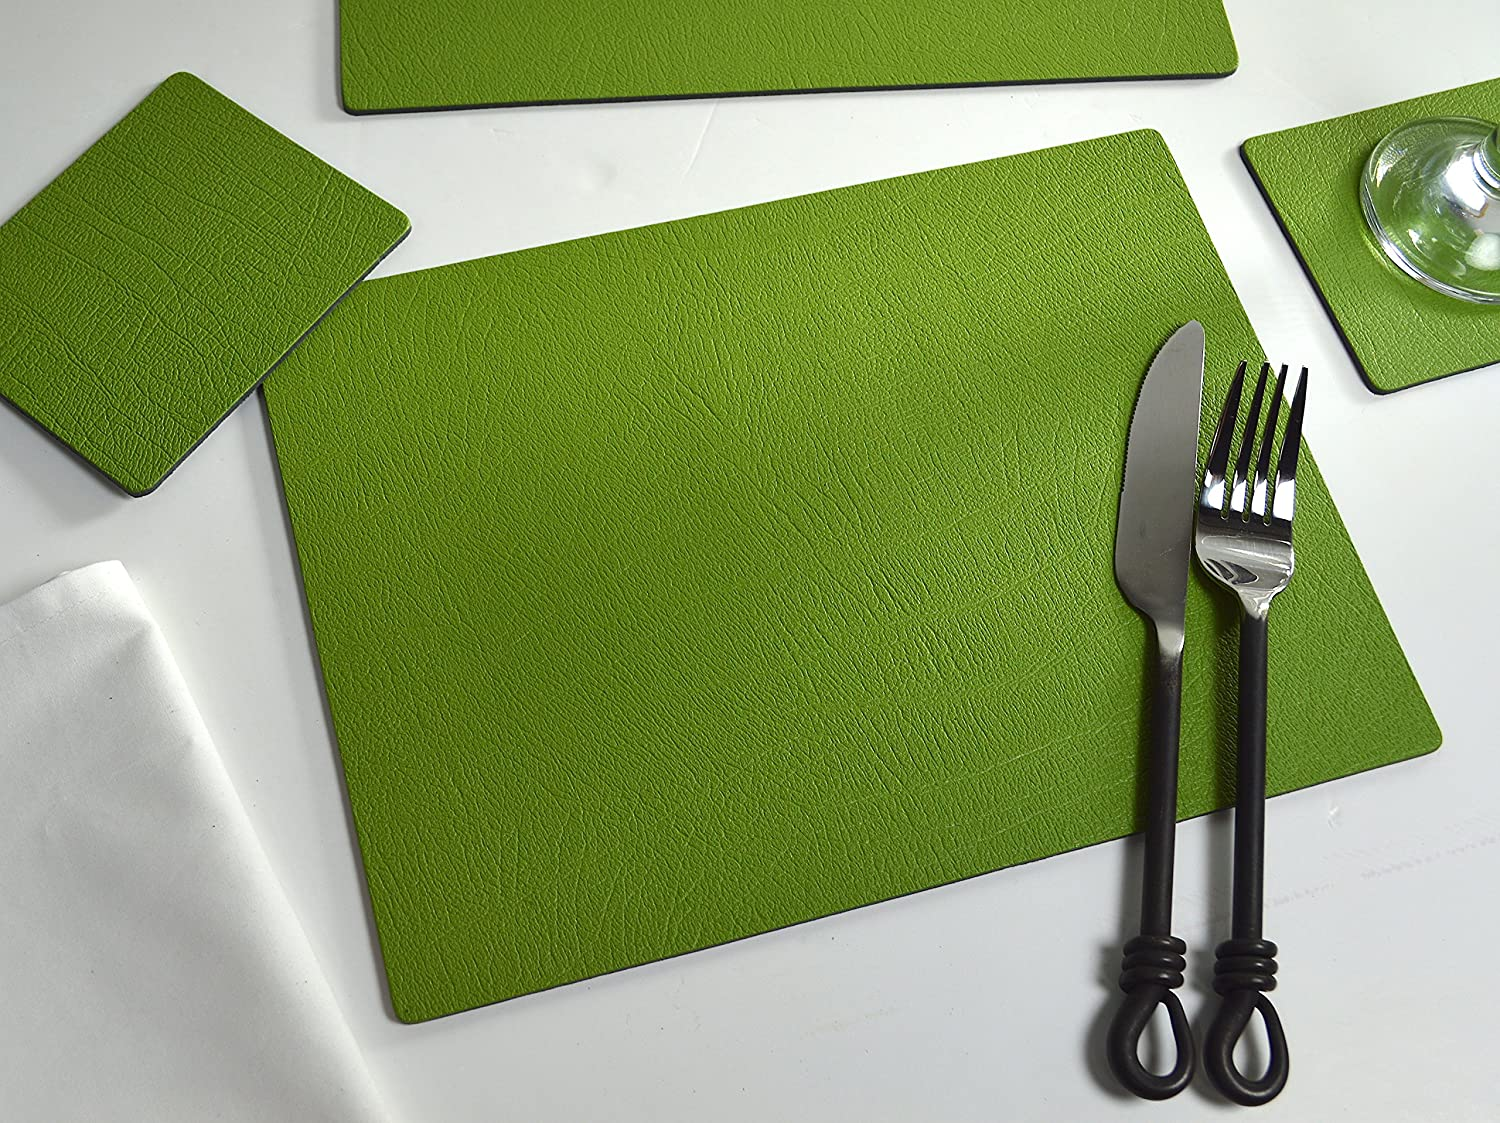 Giftag Set Of 6 Sage Green Bonded Leather Placemats And 6 Coasters Made In Uk 12 Piece Amazon Co Uk Kitchen Home